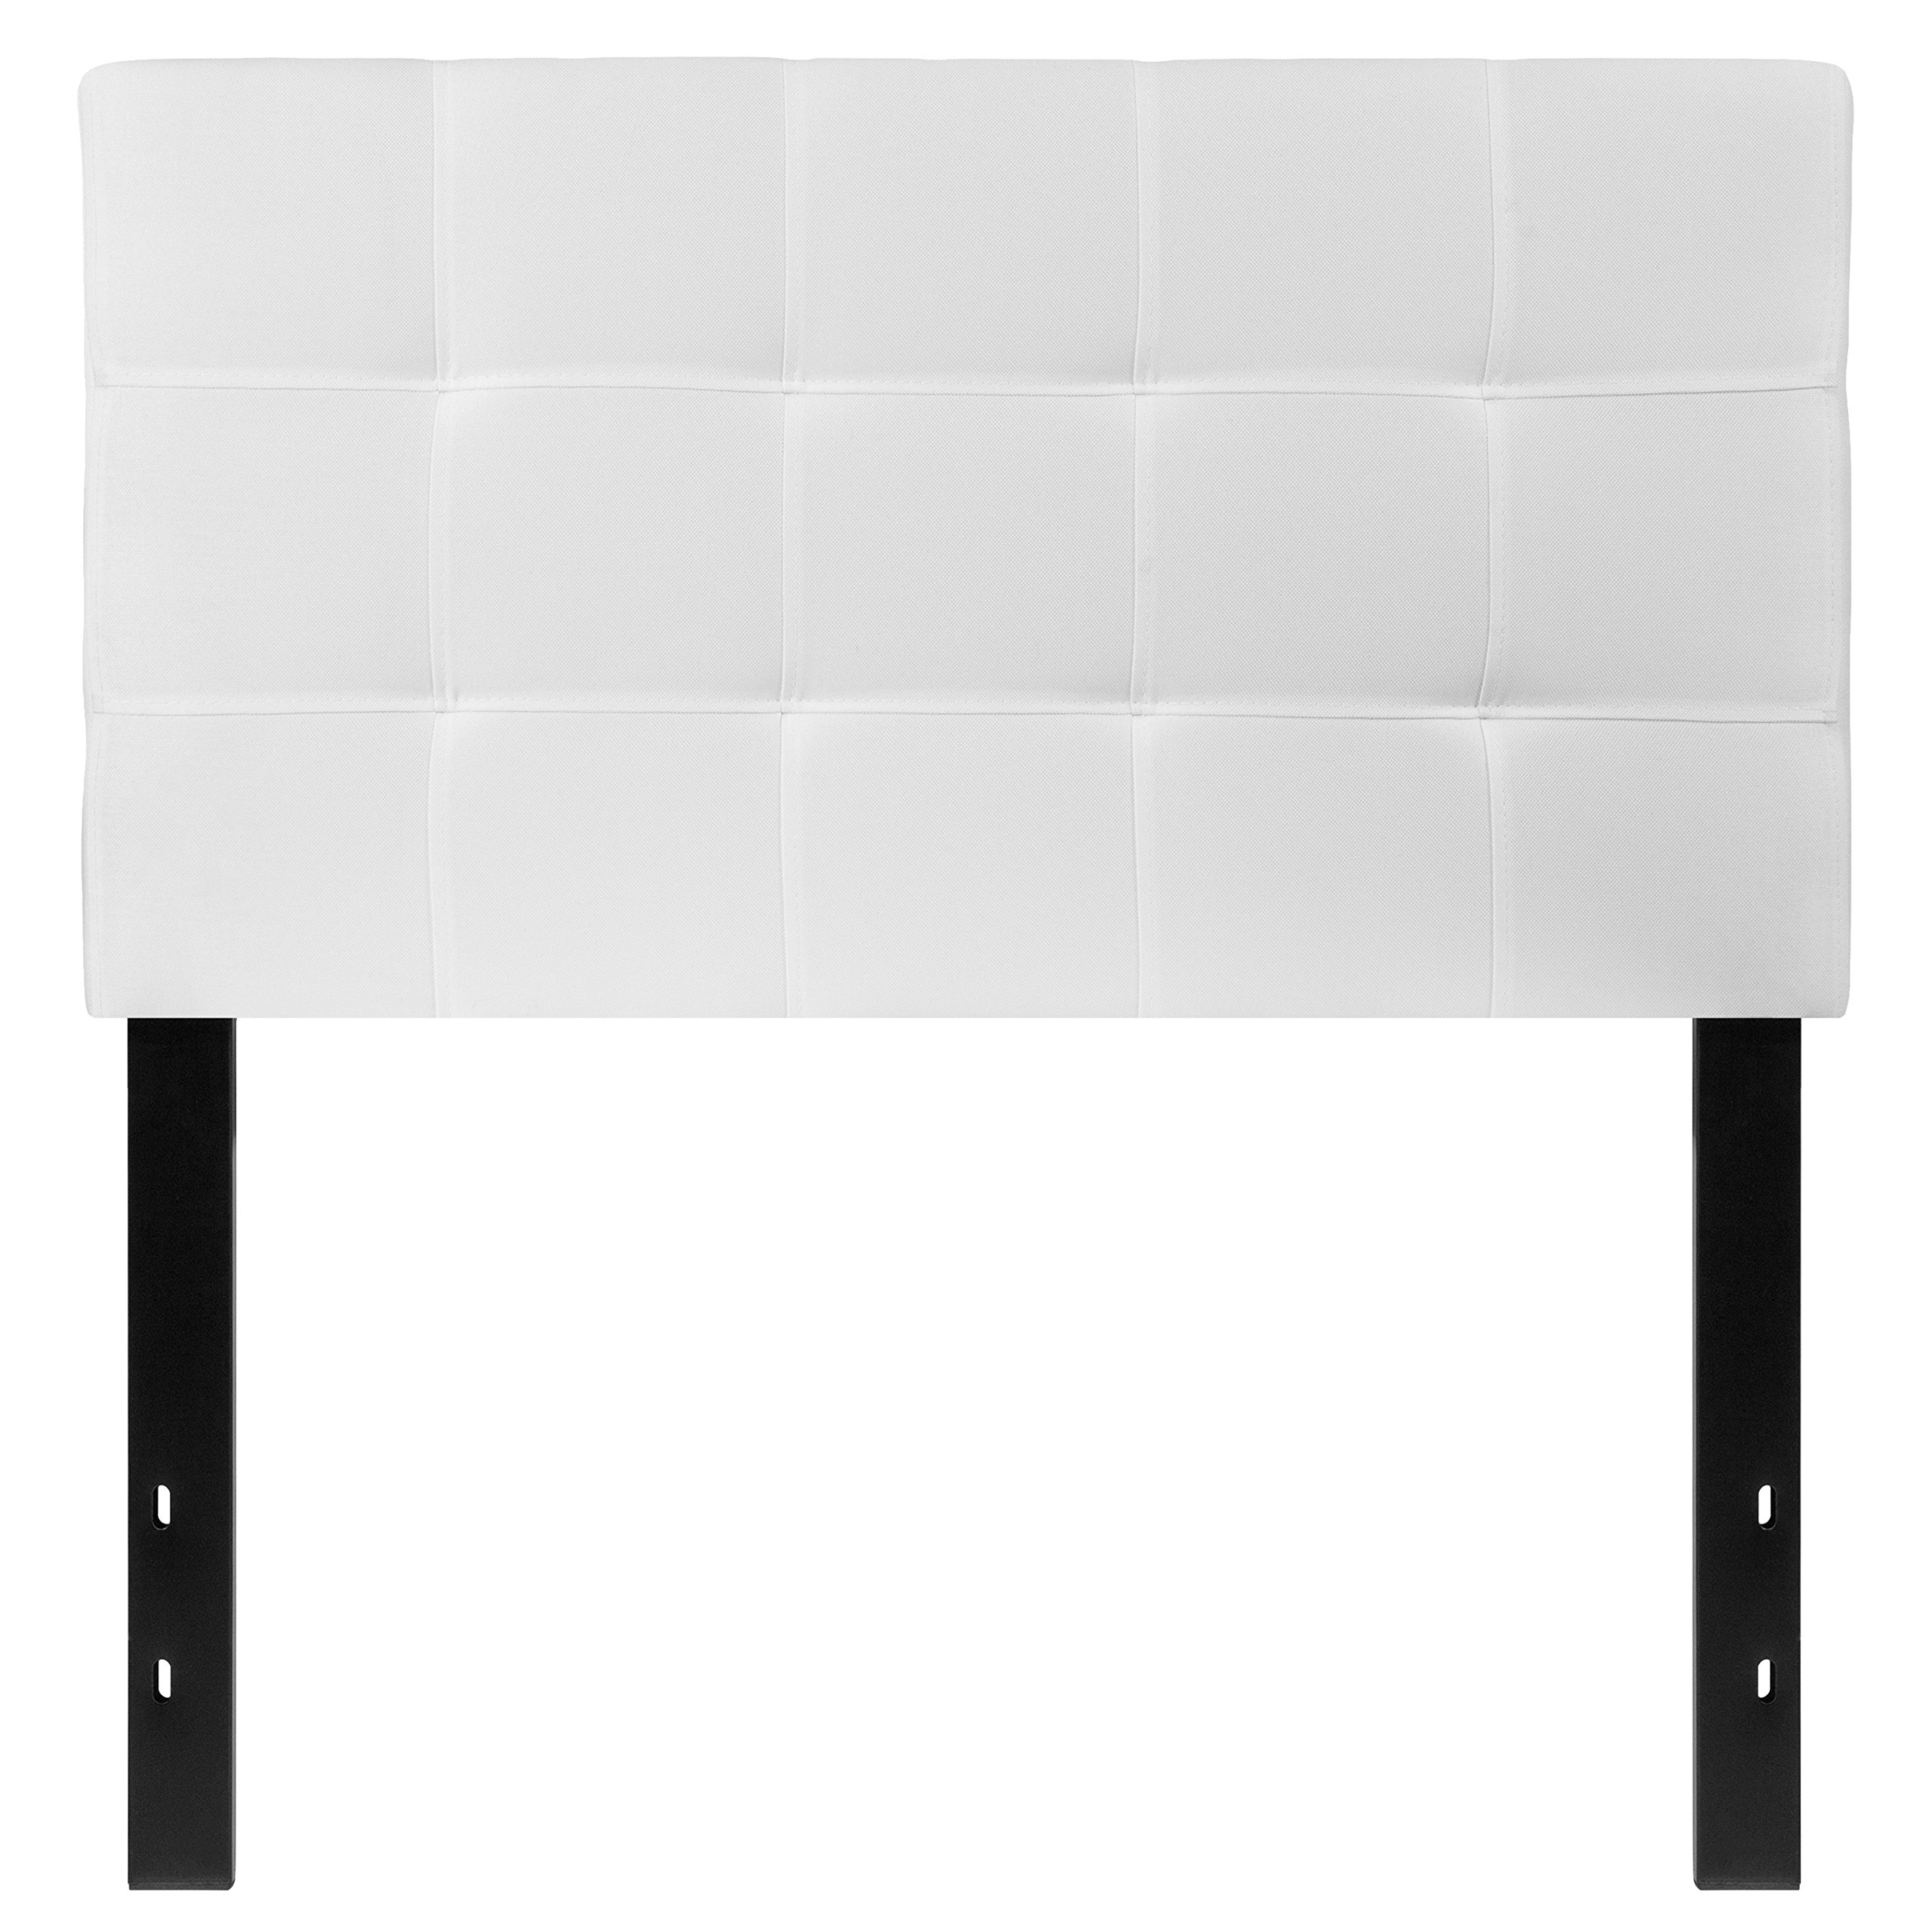 Flash Furniture Bedford Tufted Upholstered Twin Size Headboard in White Fabric - HG-HB1704-T-W-GG